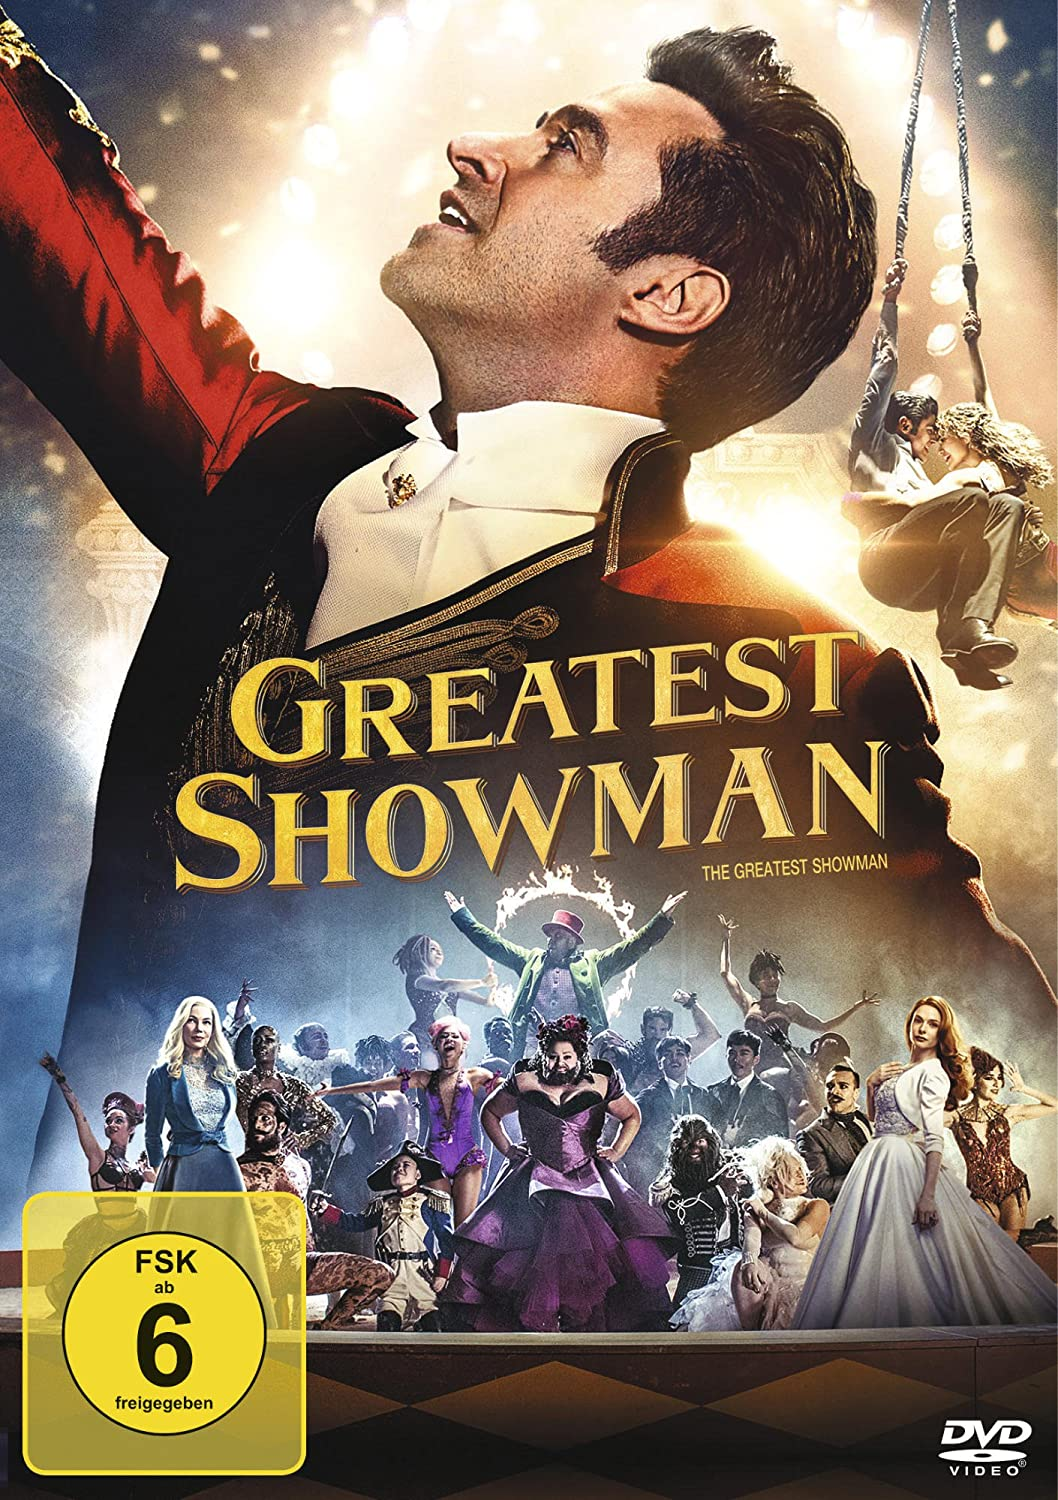 Cover: Greatest Showman 1 DVD (101 min)